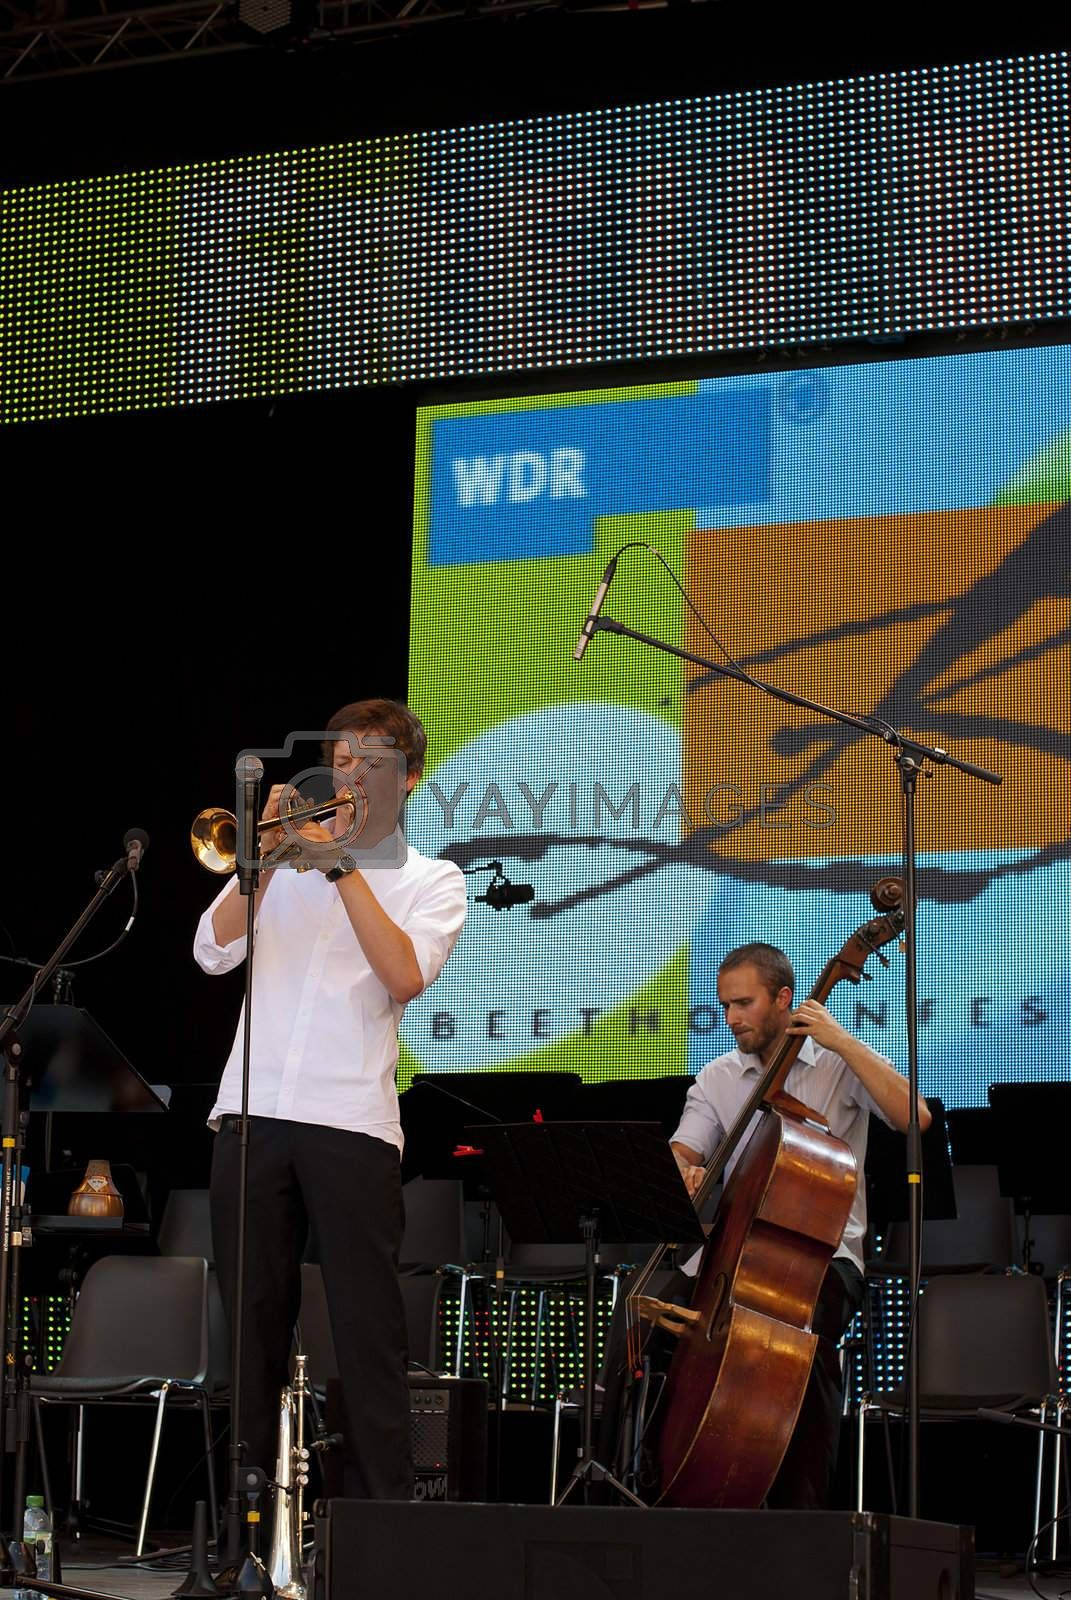 German Day of Unity, Bonn, photo taken on 1 of October 2011, concert of school orchestra at WDR-stage